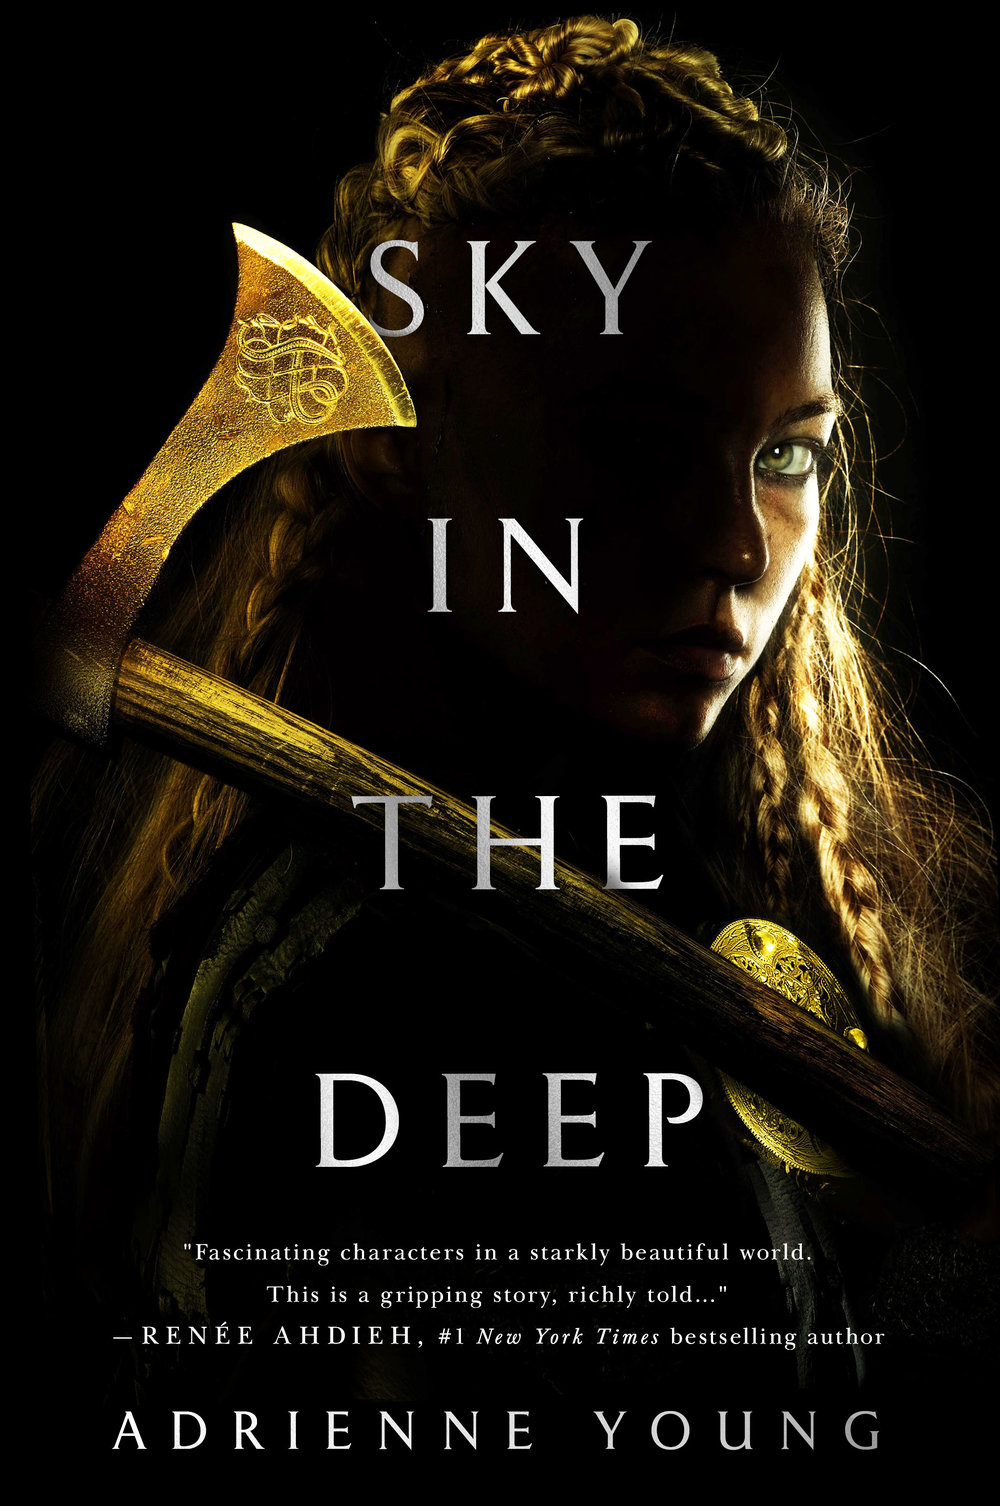 Happy book birthday to SKY IN THE DEEP by Adrienne Young! - A 2018 Most Anticipated Young Adult book that is part Wonder Woman, part Vikings―and all heart.OND ELDR. BREATHE FIRE.Raised to be a warrior, seventeen-year-old Eelyn fights alongside her Aska clansmen in an ancient, rivalry against the Riki clan. Her life is brutal but simple: fight and survive. Until the day she sees the impossible on the battlefield―her brother, fighting with the enemy―the brother she watched die five years ago.Faced with her brother's betrayal, she must survive the winter in the mountains with the Riki, in a village where every neighbor is an enemy, every battle scar possibly one she delivered. But when the Riki village is raided by a ruthless clan thought to be a legend, Eelyn is even more desperate to get back to her beloved family.She is given no choice but to trust Fiske, her brother's friend, who sees her as a threat. They must do the impossible: unite the clans to fight together, or risk being slaughtered one by one. Driven by a love for her clan and her growing love for Fiske, Eelyn must confront her own definition of loyalty and family while daring to put her faith in the people she's spent her life hating.